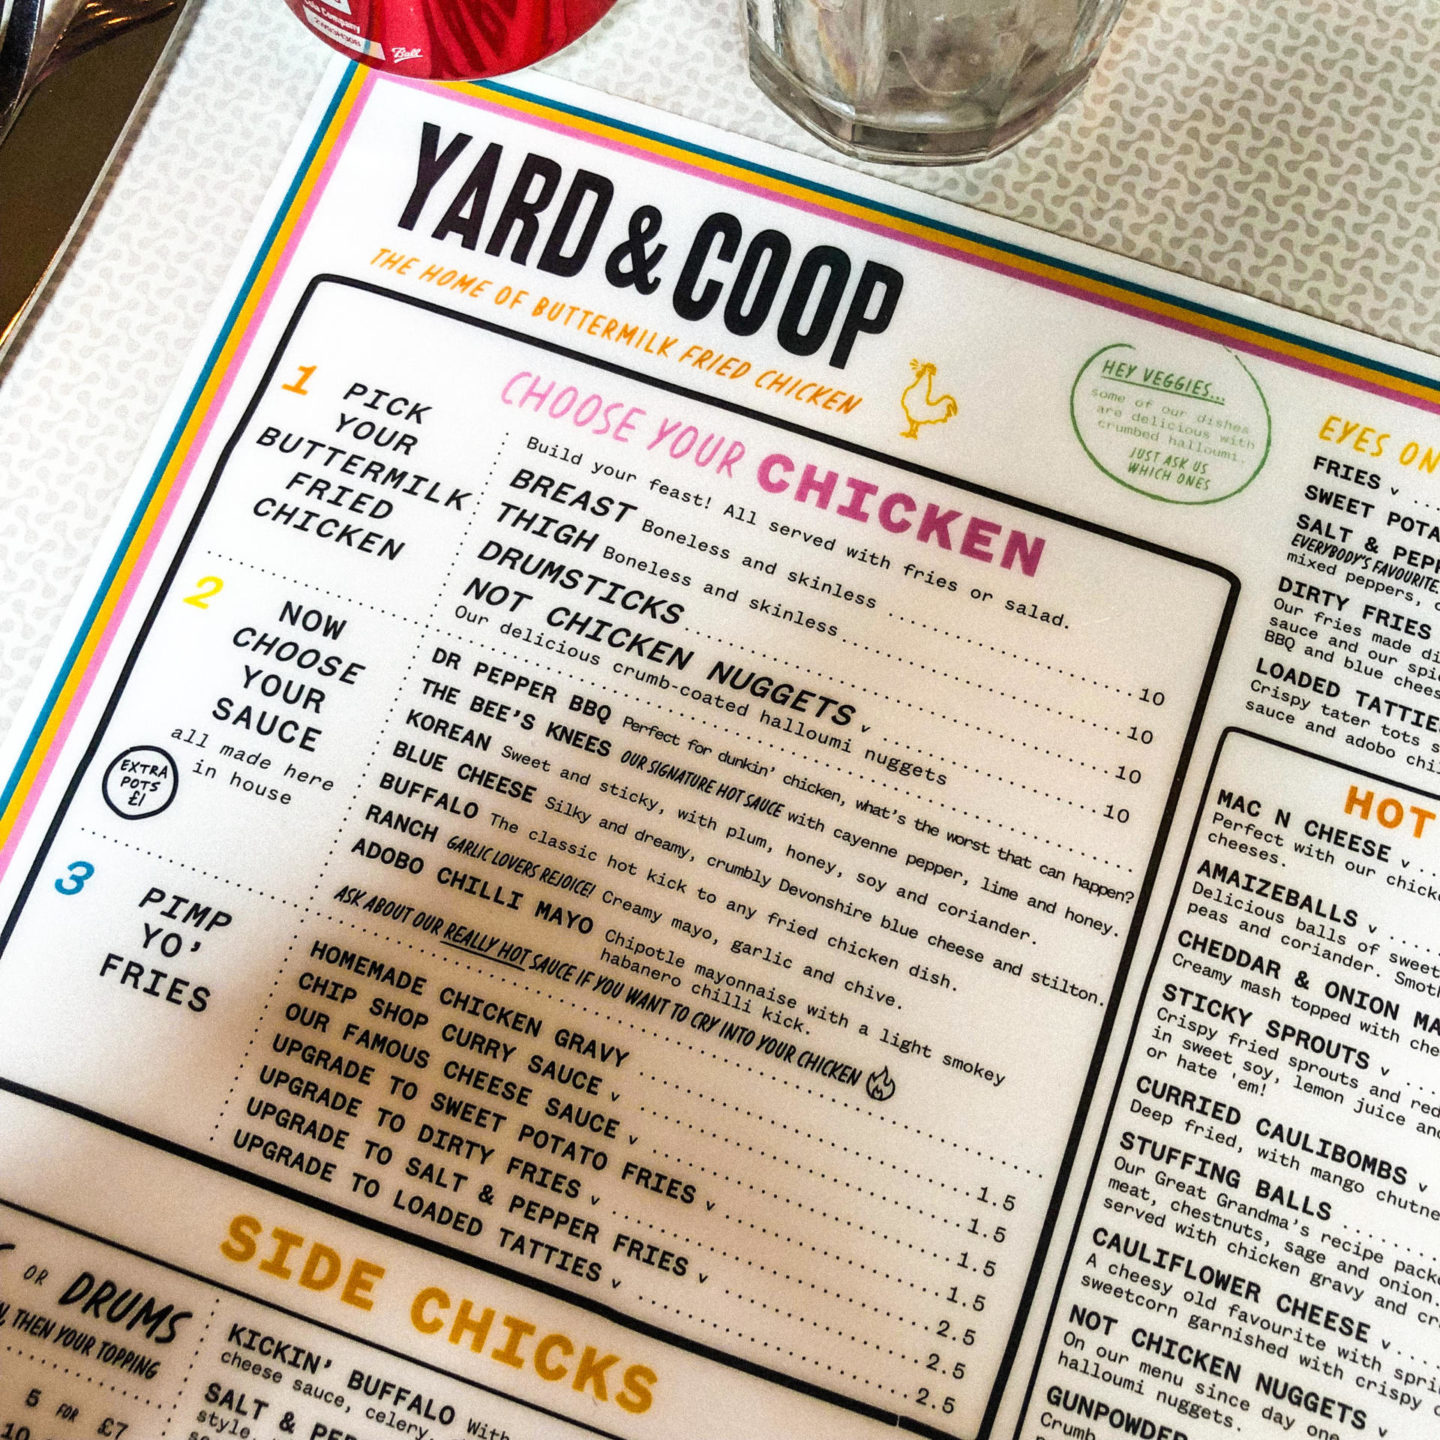 The Sunday Roast Diaries: Yard & Coop, Manchester - Rachel Nicole UK Blogger